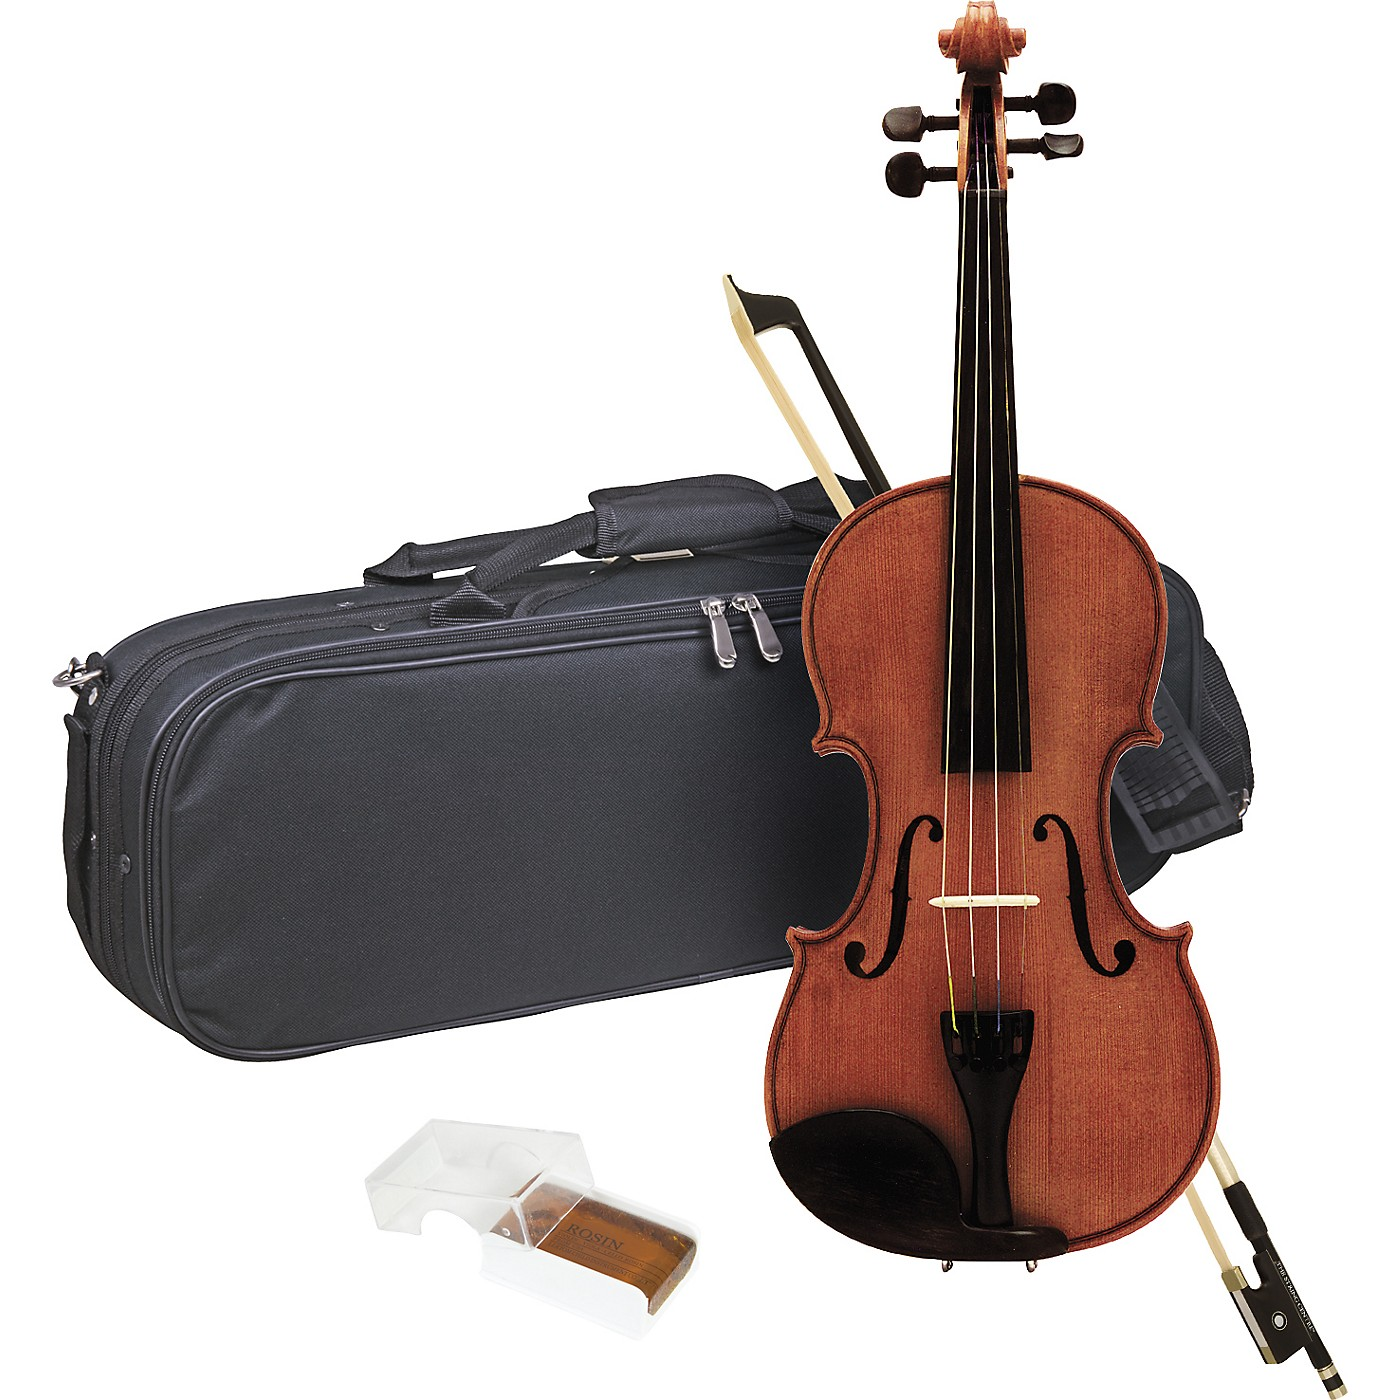 Karl Willhelm 22 Violin Outfit 4/4 Size thumbnail